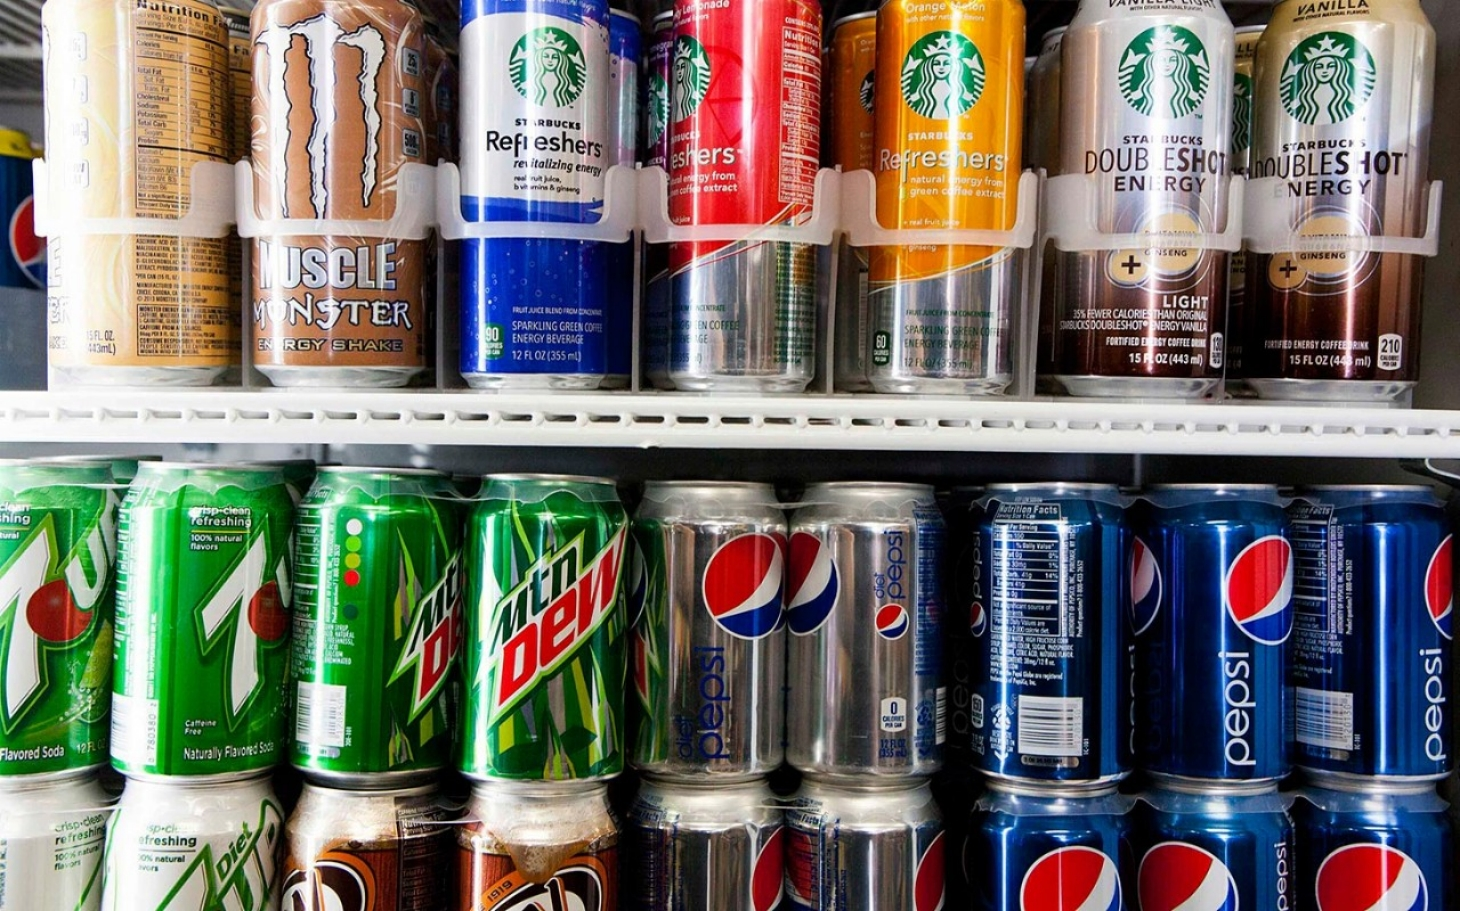 California lawmakers reject sugary drink warning labels ...